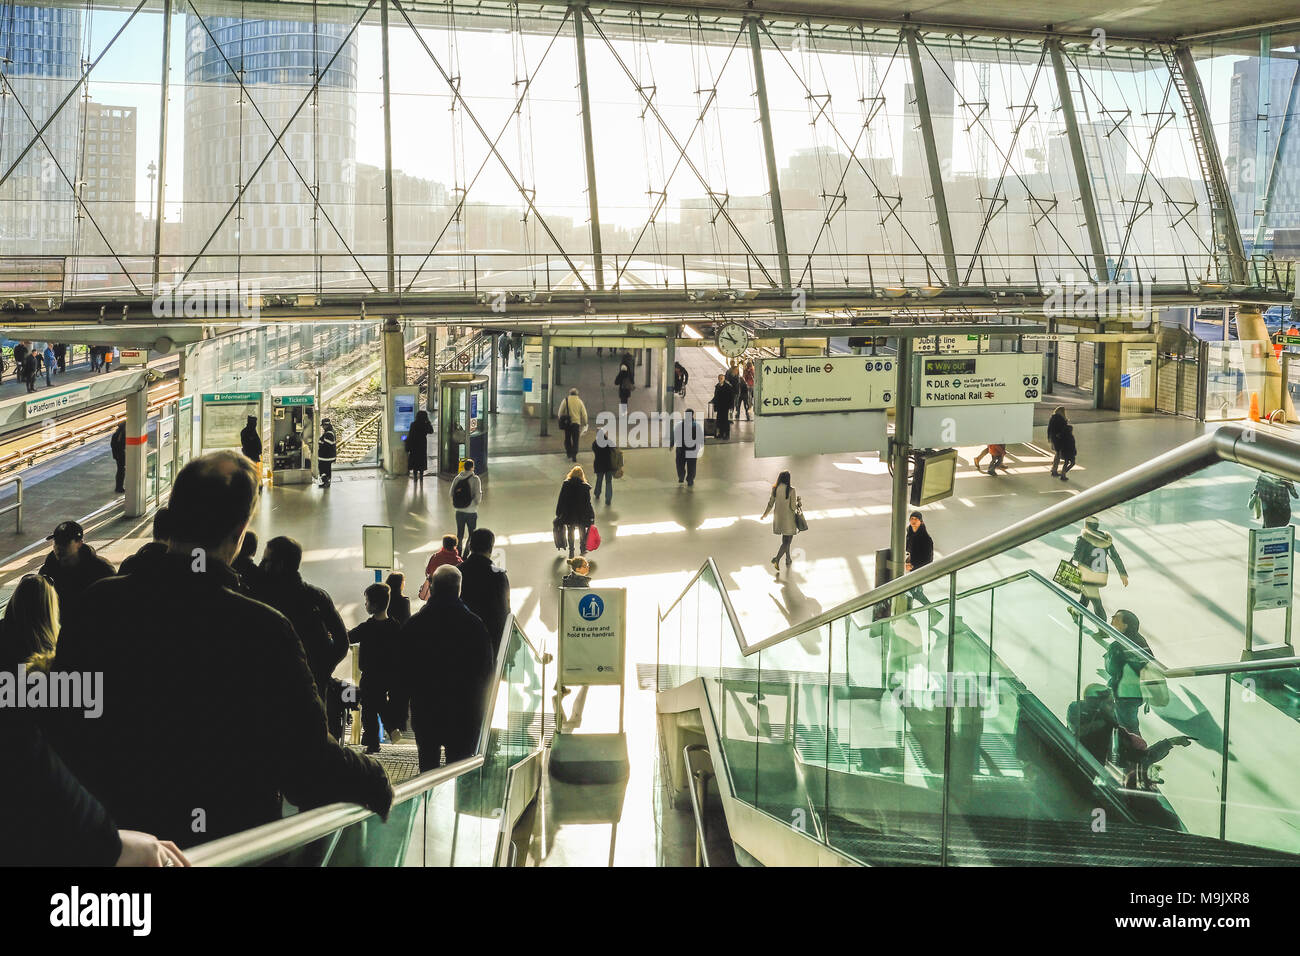 London, UK - February 16, 2018:  Concourse at Stratford Station, with people going down the escalator. - Stock Image